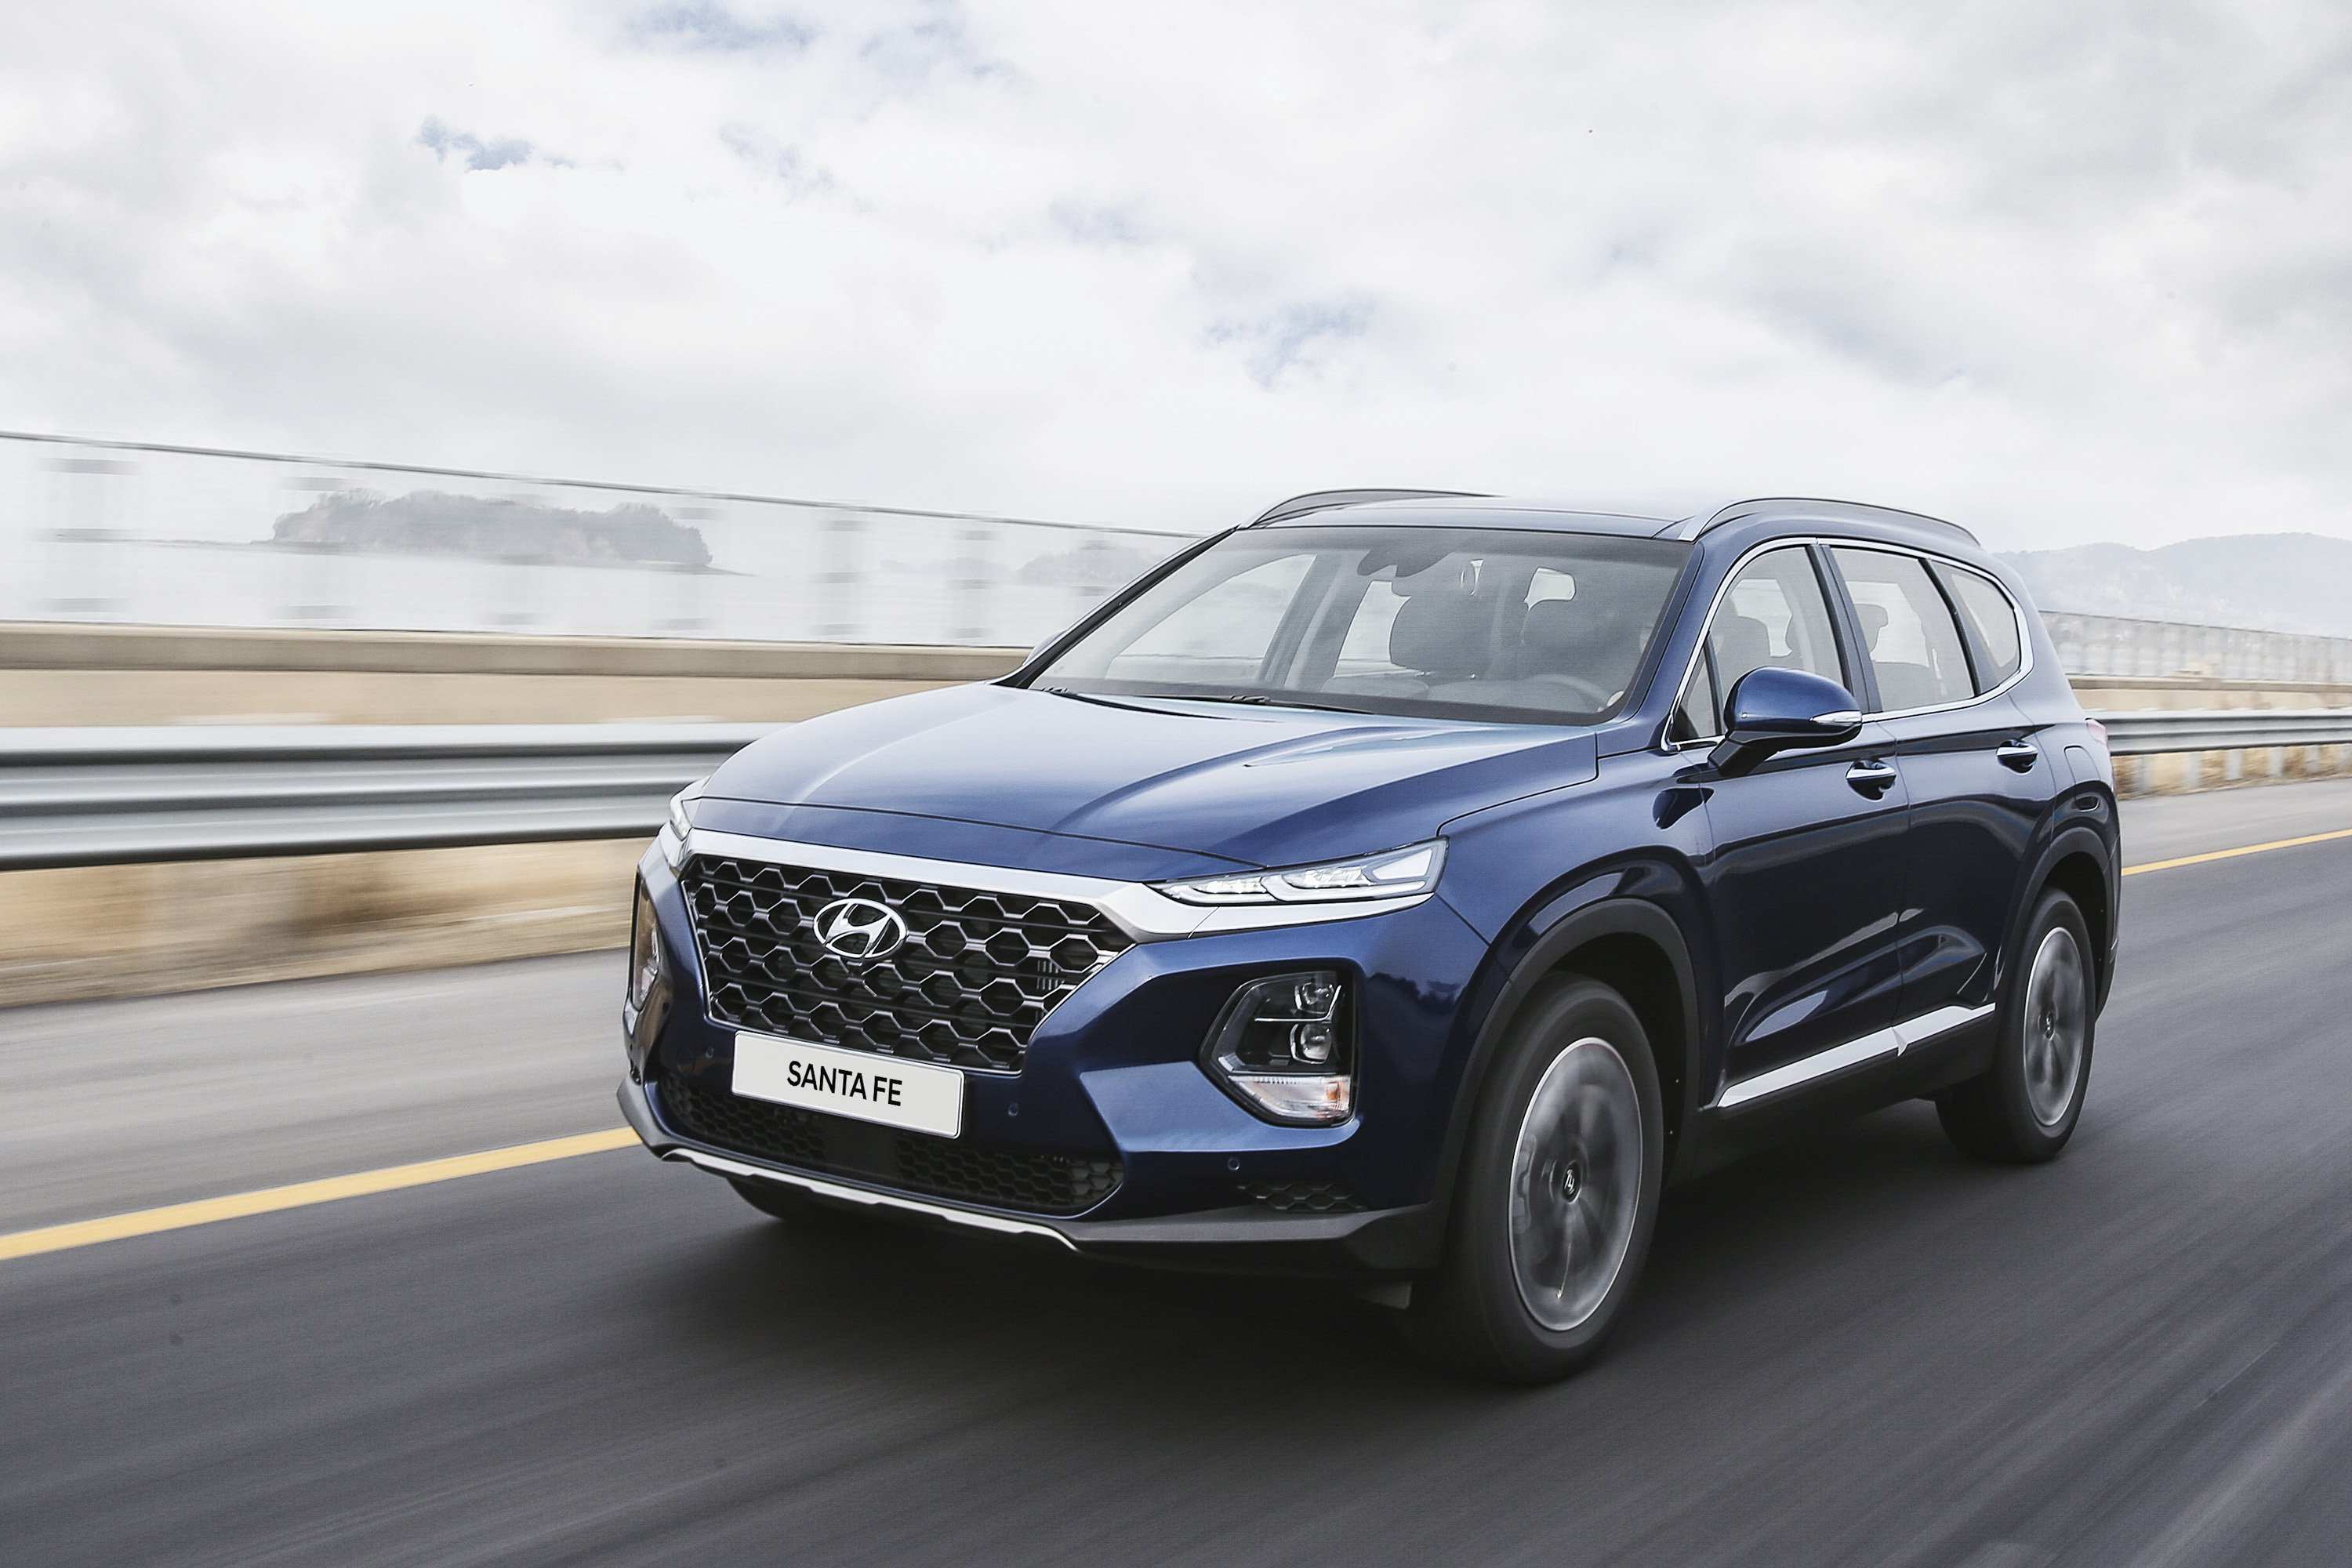 20 Best Review 2020 Hyundai Santa Fe N Price and Review for 2020 Hyundai Santa Fe N